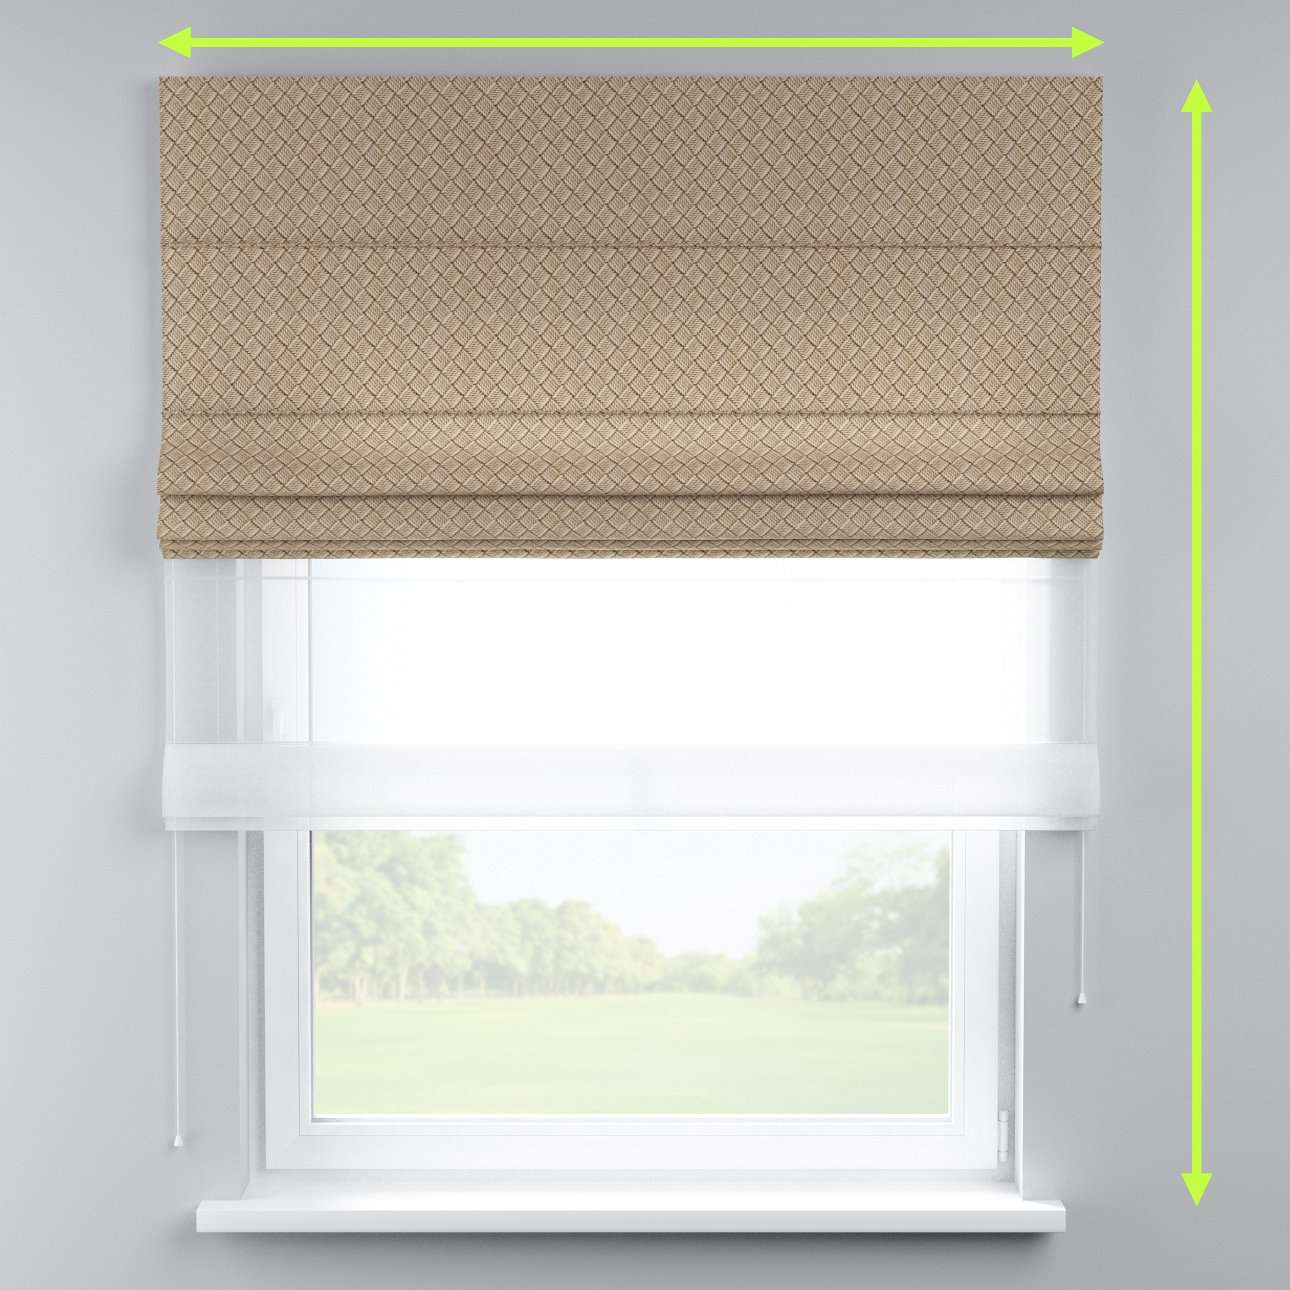 Voile and fabric roman blind (DUO II) in collection Marina, fabric: 140-17